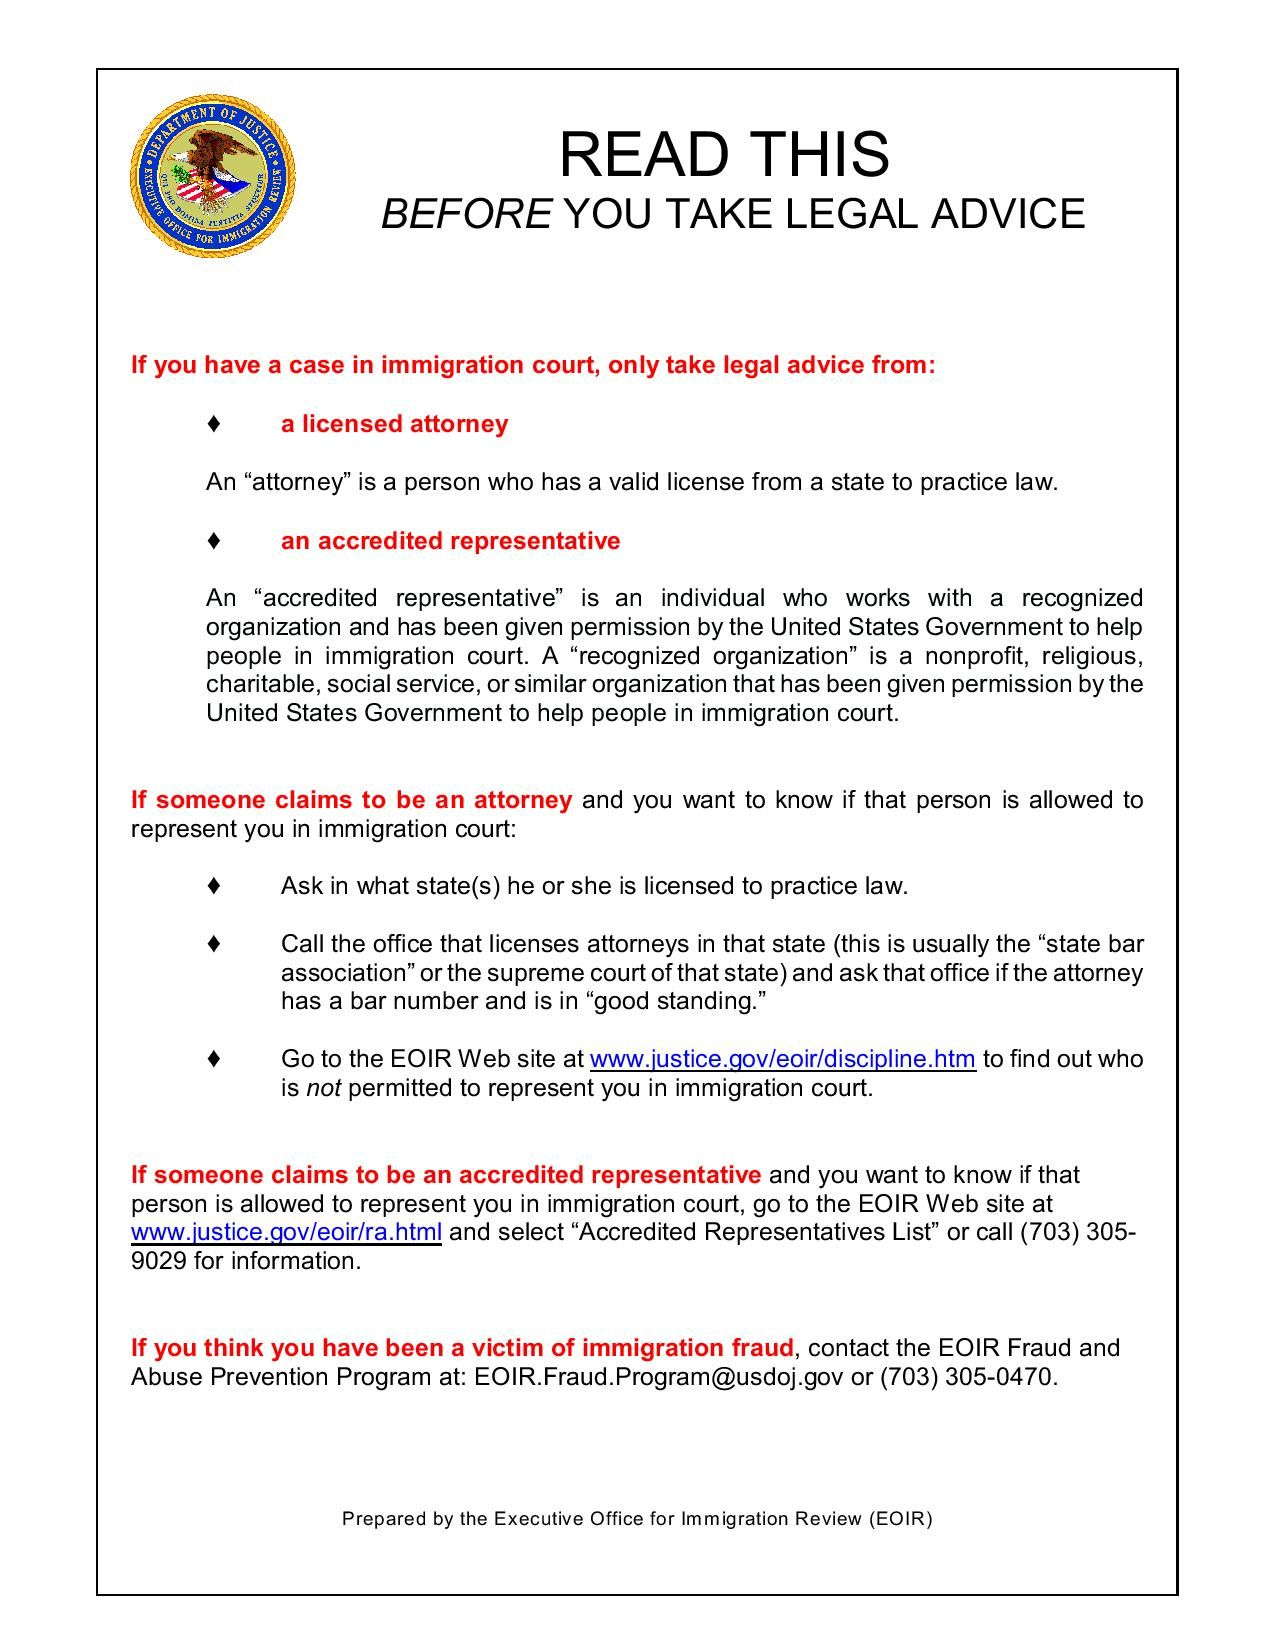 Do You Have Doubts About Finding A Good Immigration Lawyer Are